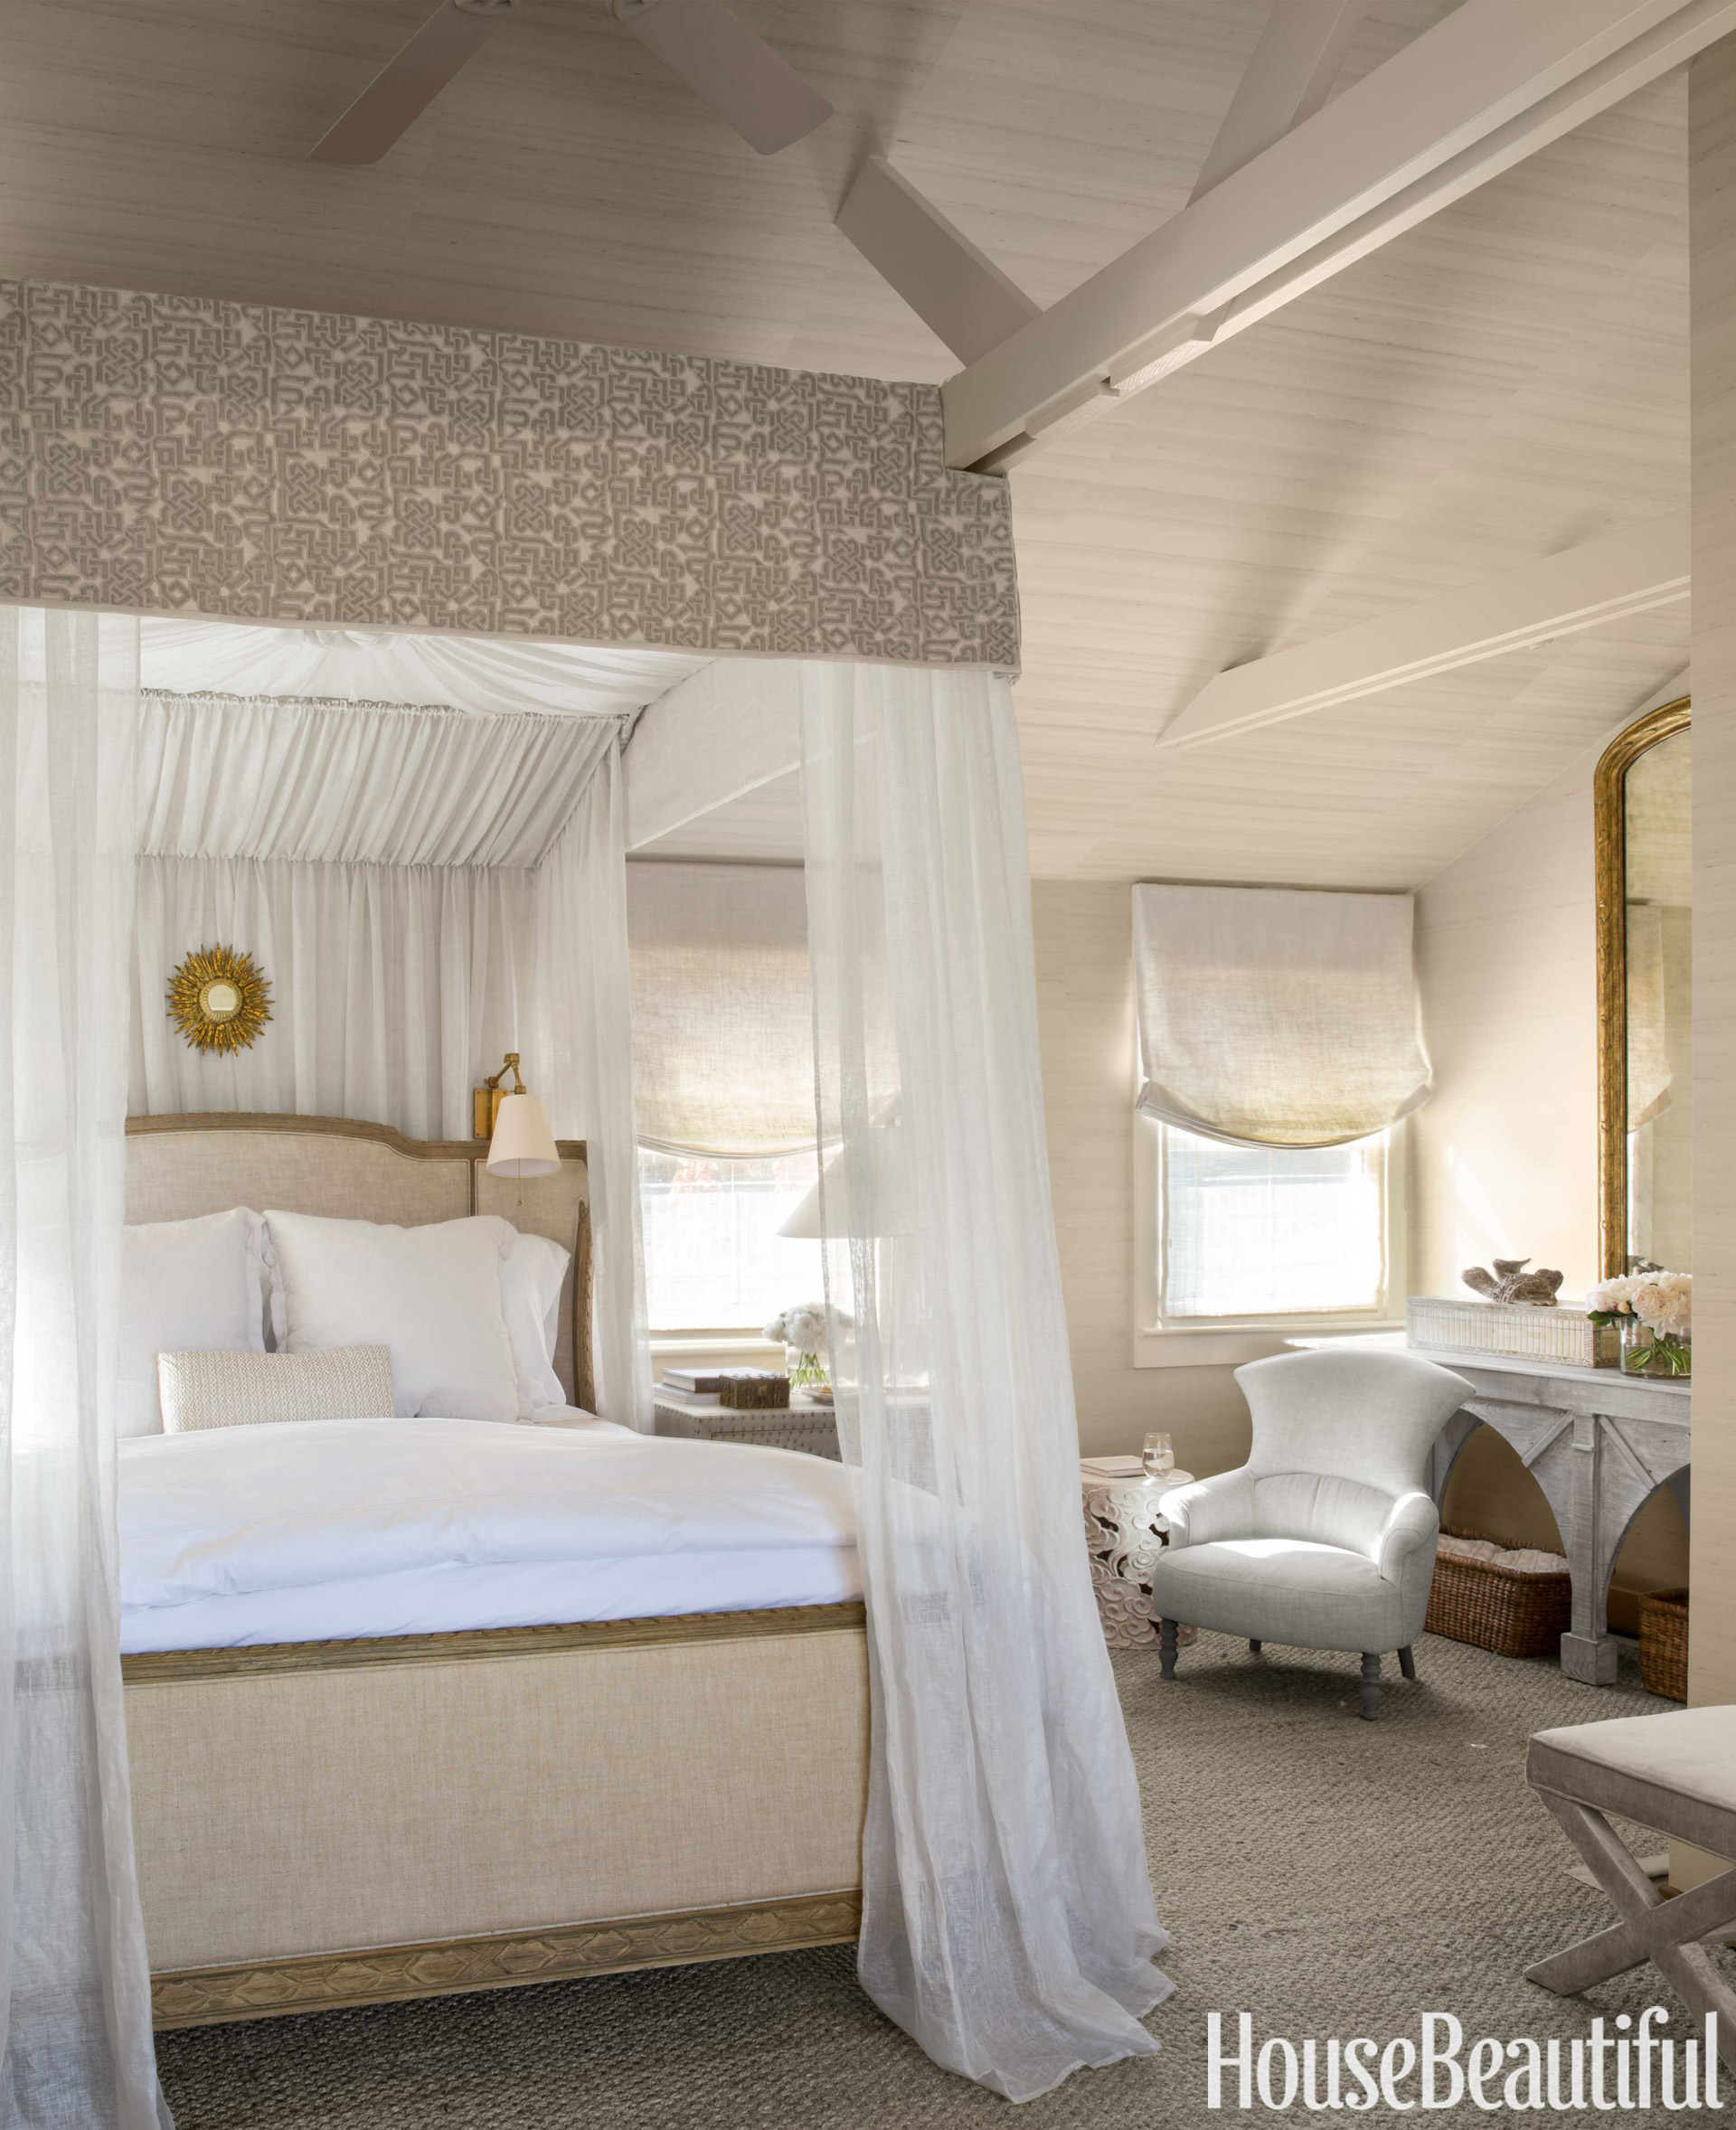 Rooms With Canopy Beds